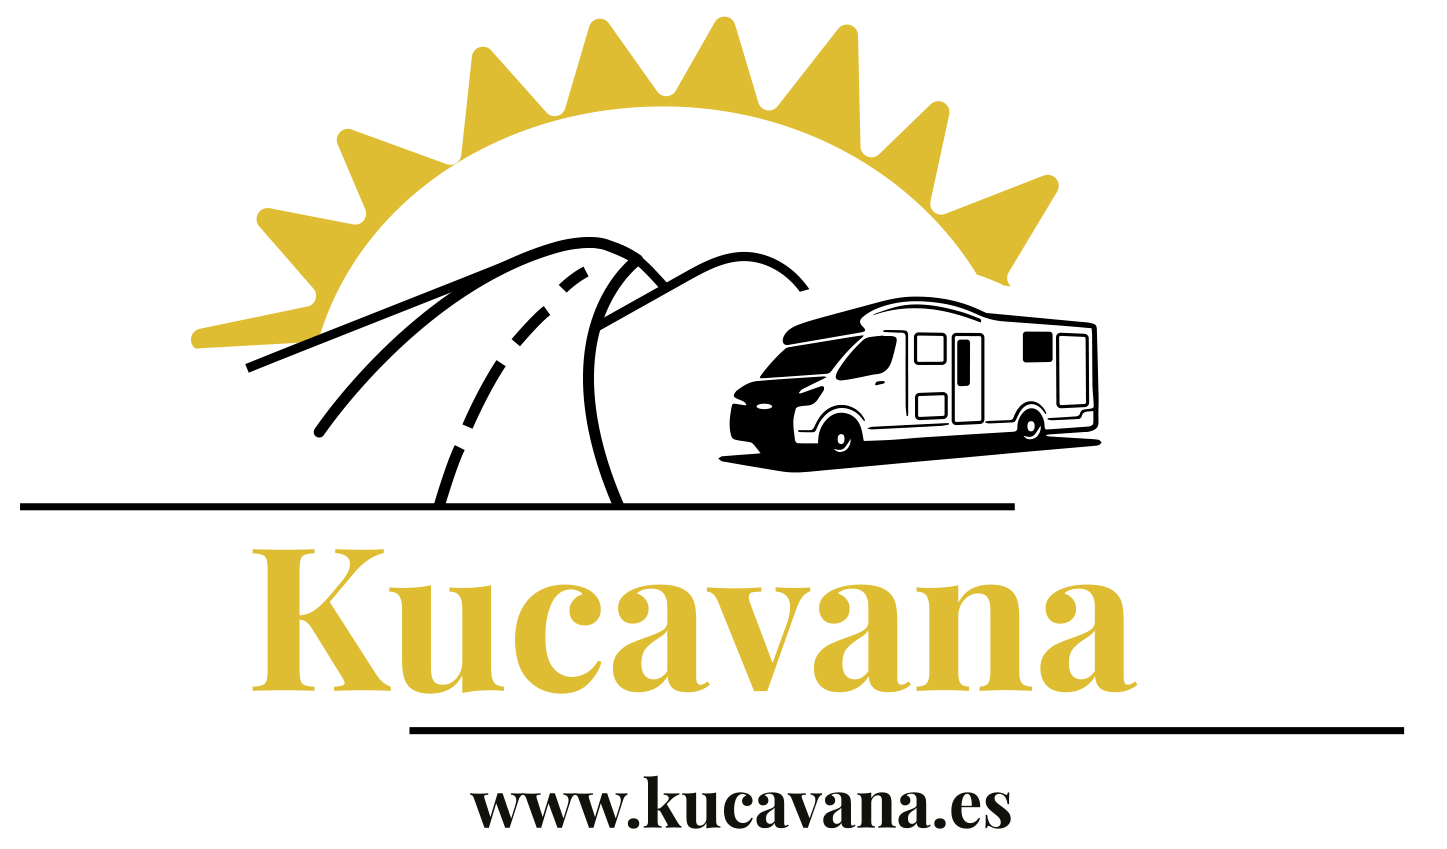 Kucavana- Travel by motorhome